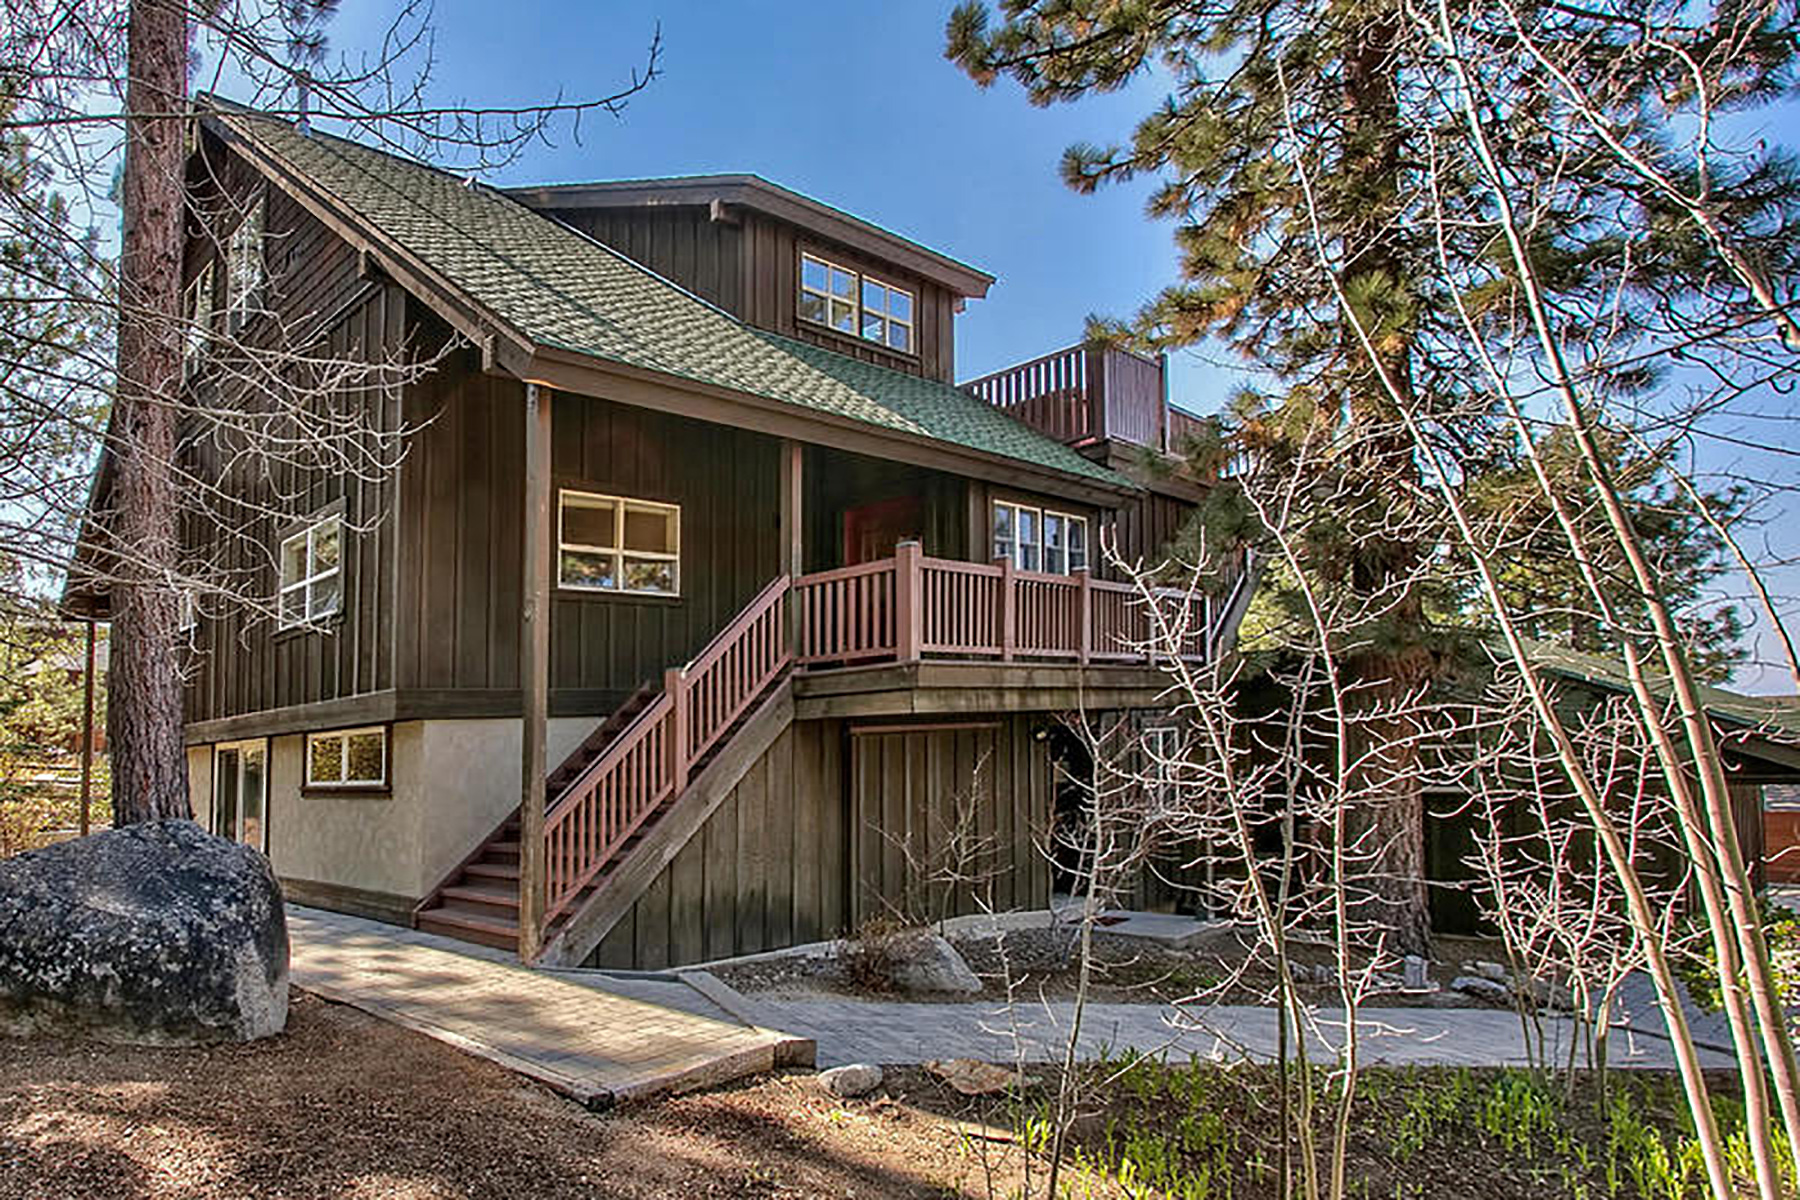 Single Family Homes for Sale at 3802 Lucinda Court, South Lake Tahoe, CA 96150 3802 Lucinda Court South Lake Tahoe, California 96150 United States